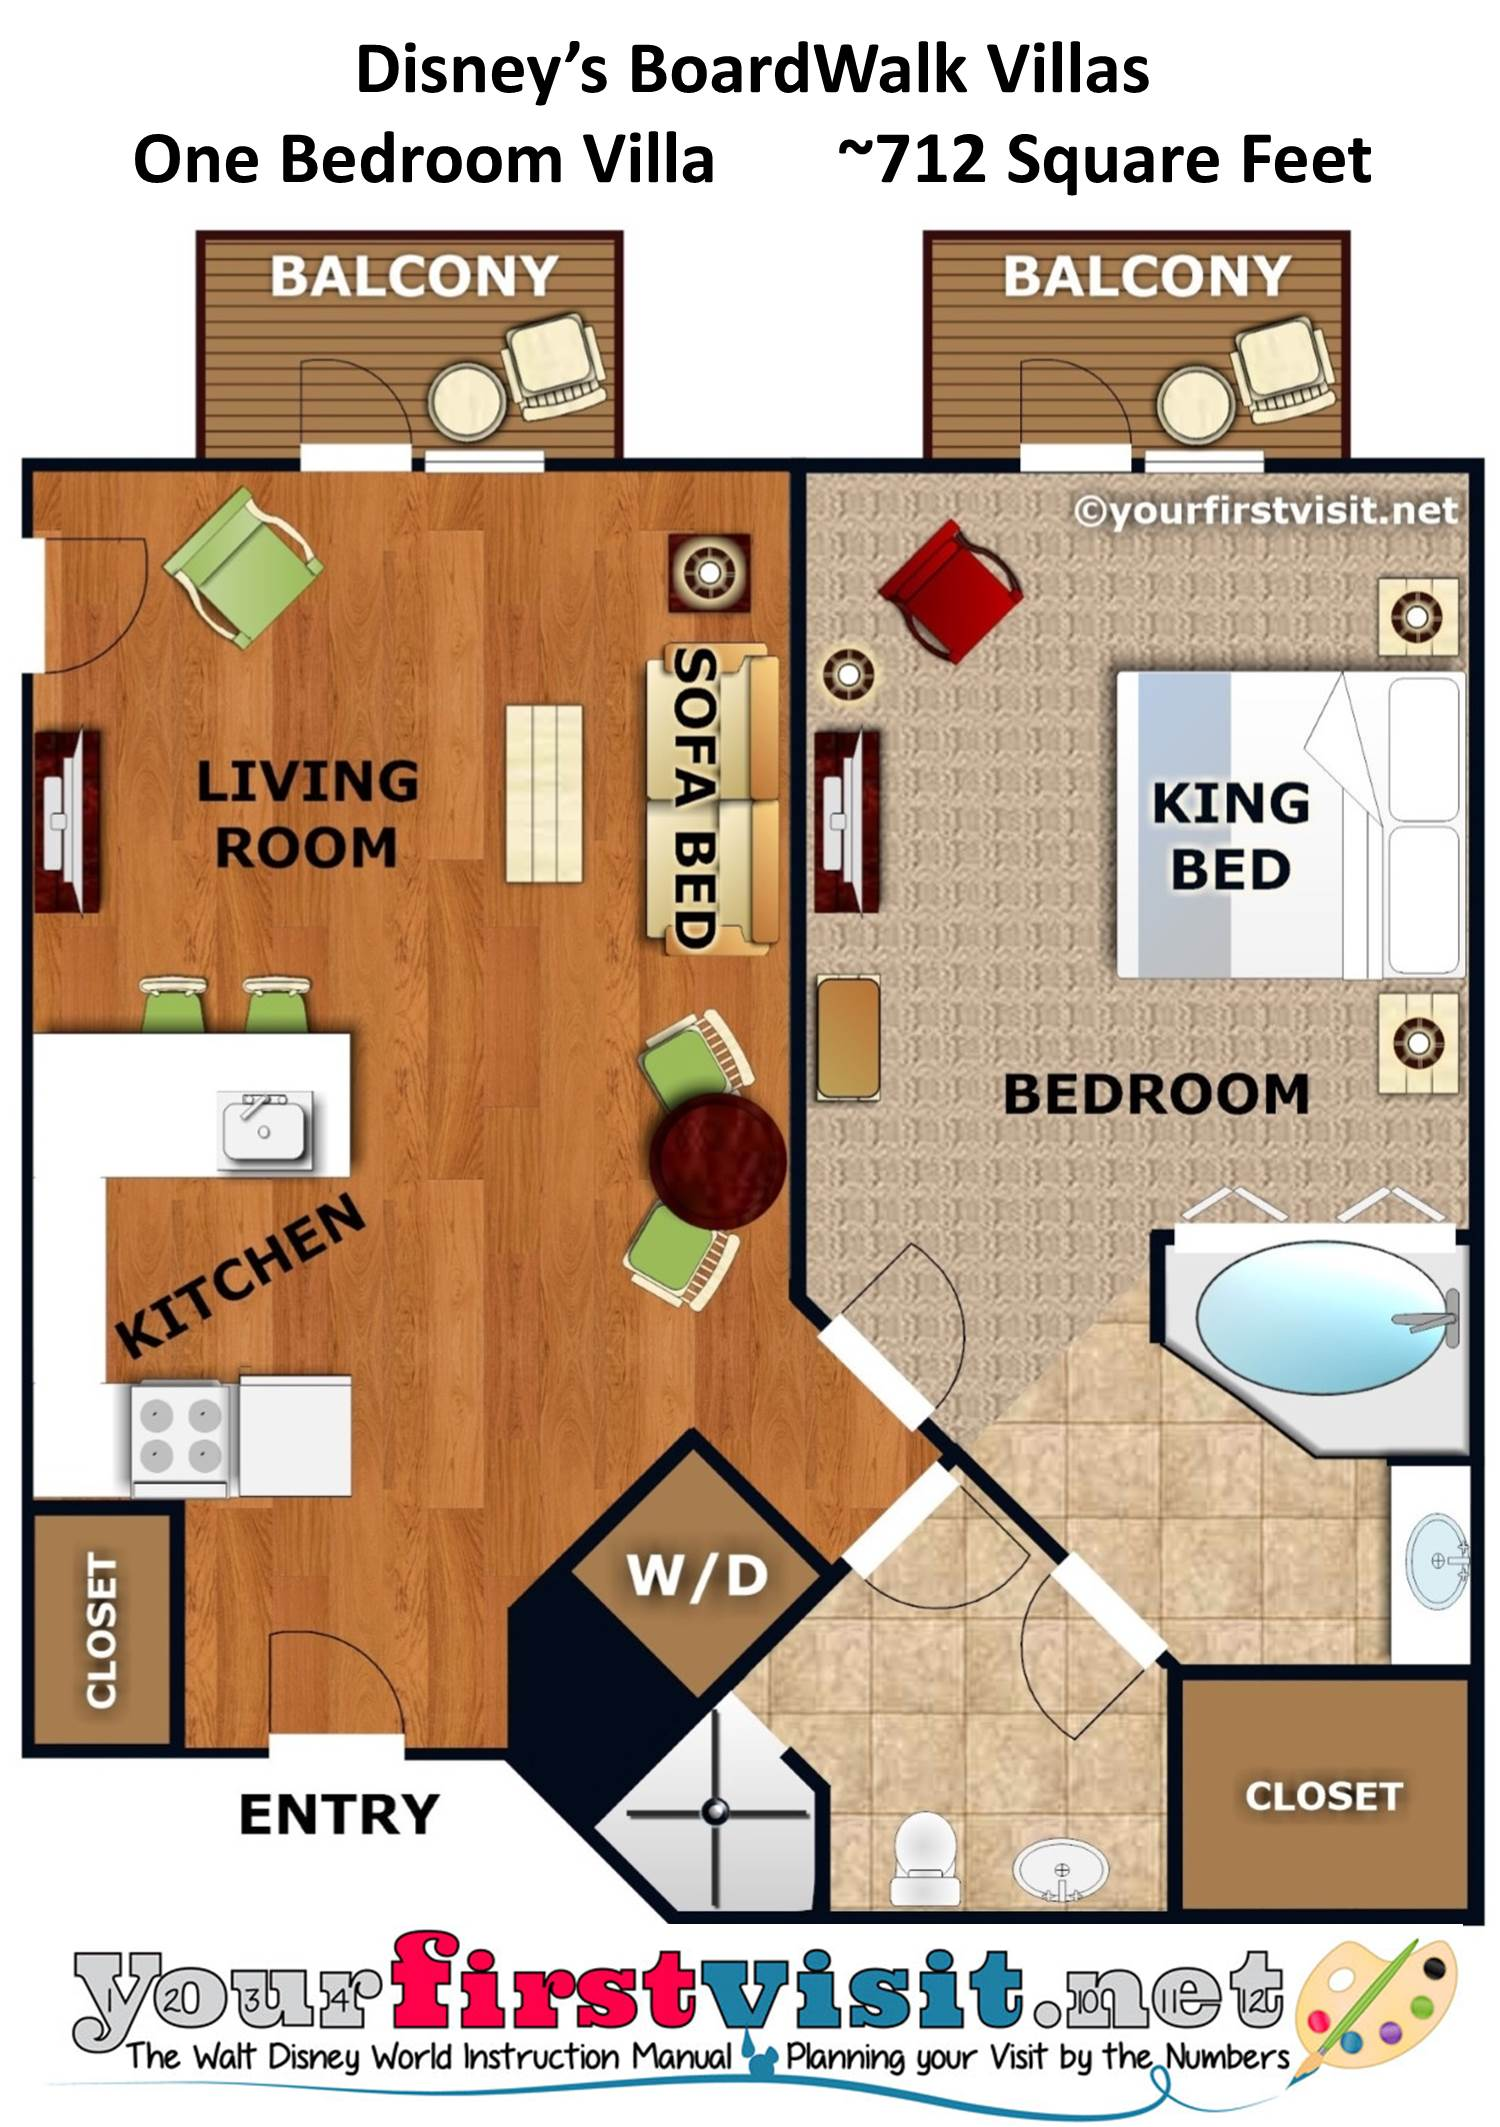 Photo tour of the living side of a one bedroom villa at disneys floor plan one bedroom villa disneys boardwalk villas from yourfirstvisit sciox Image collections